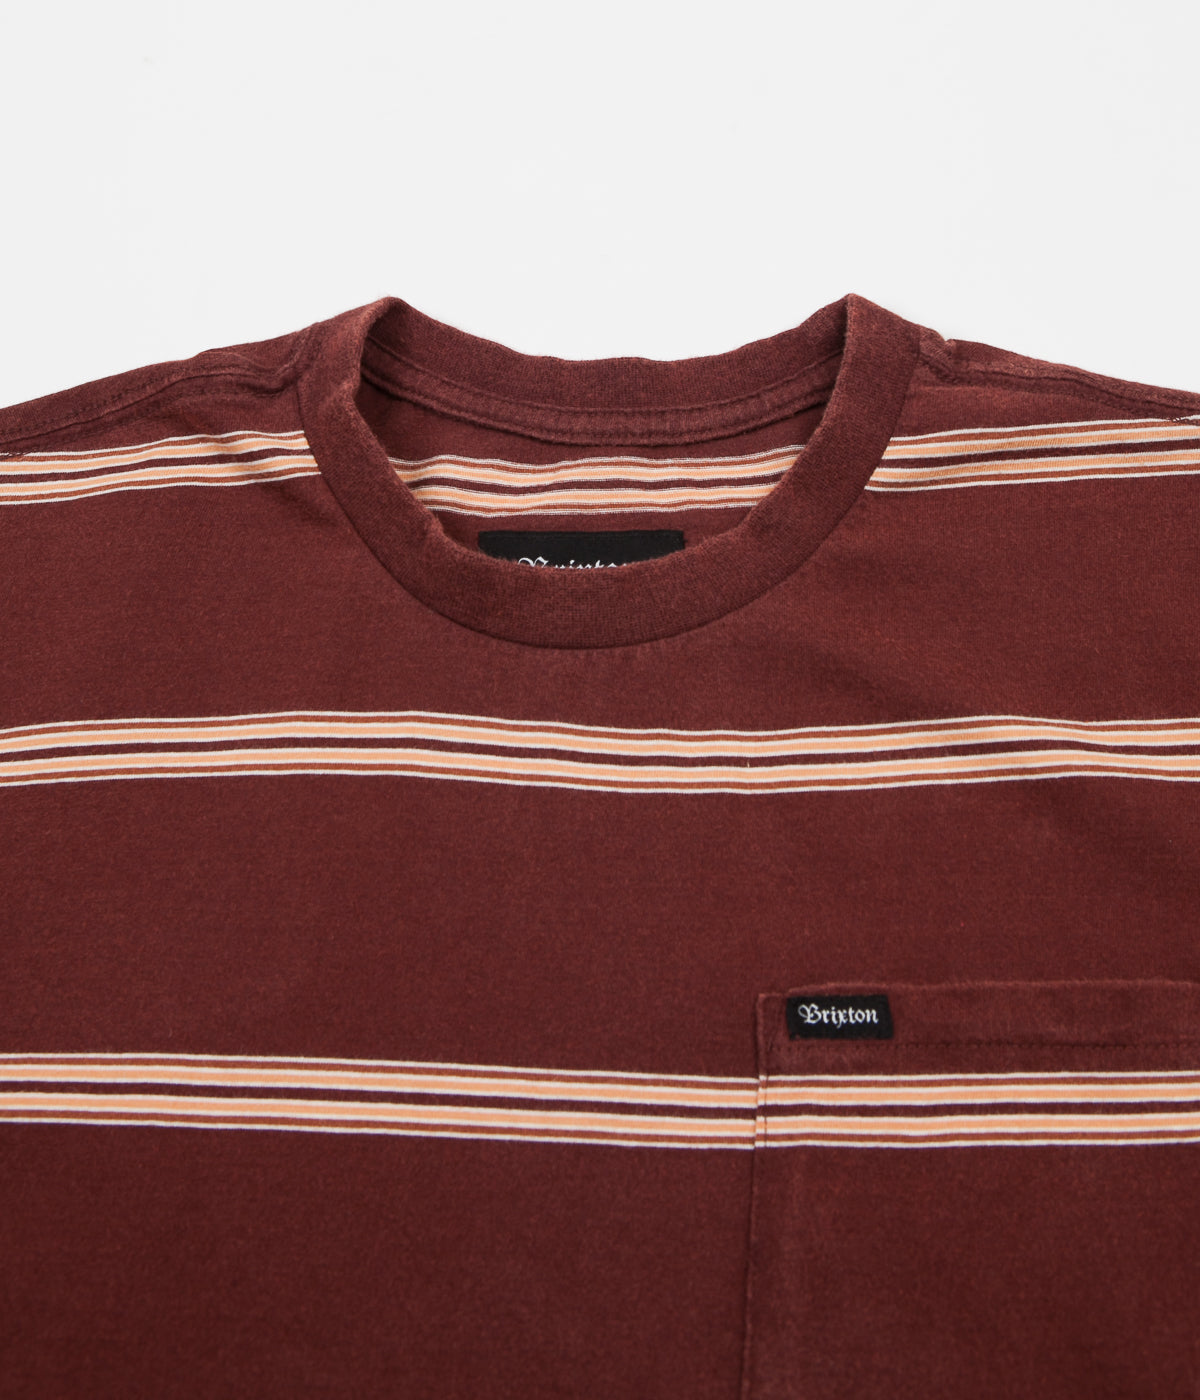 Brixton Hilt Washed Pocket T-Shirt - Chestnut